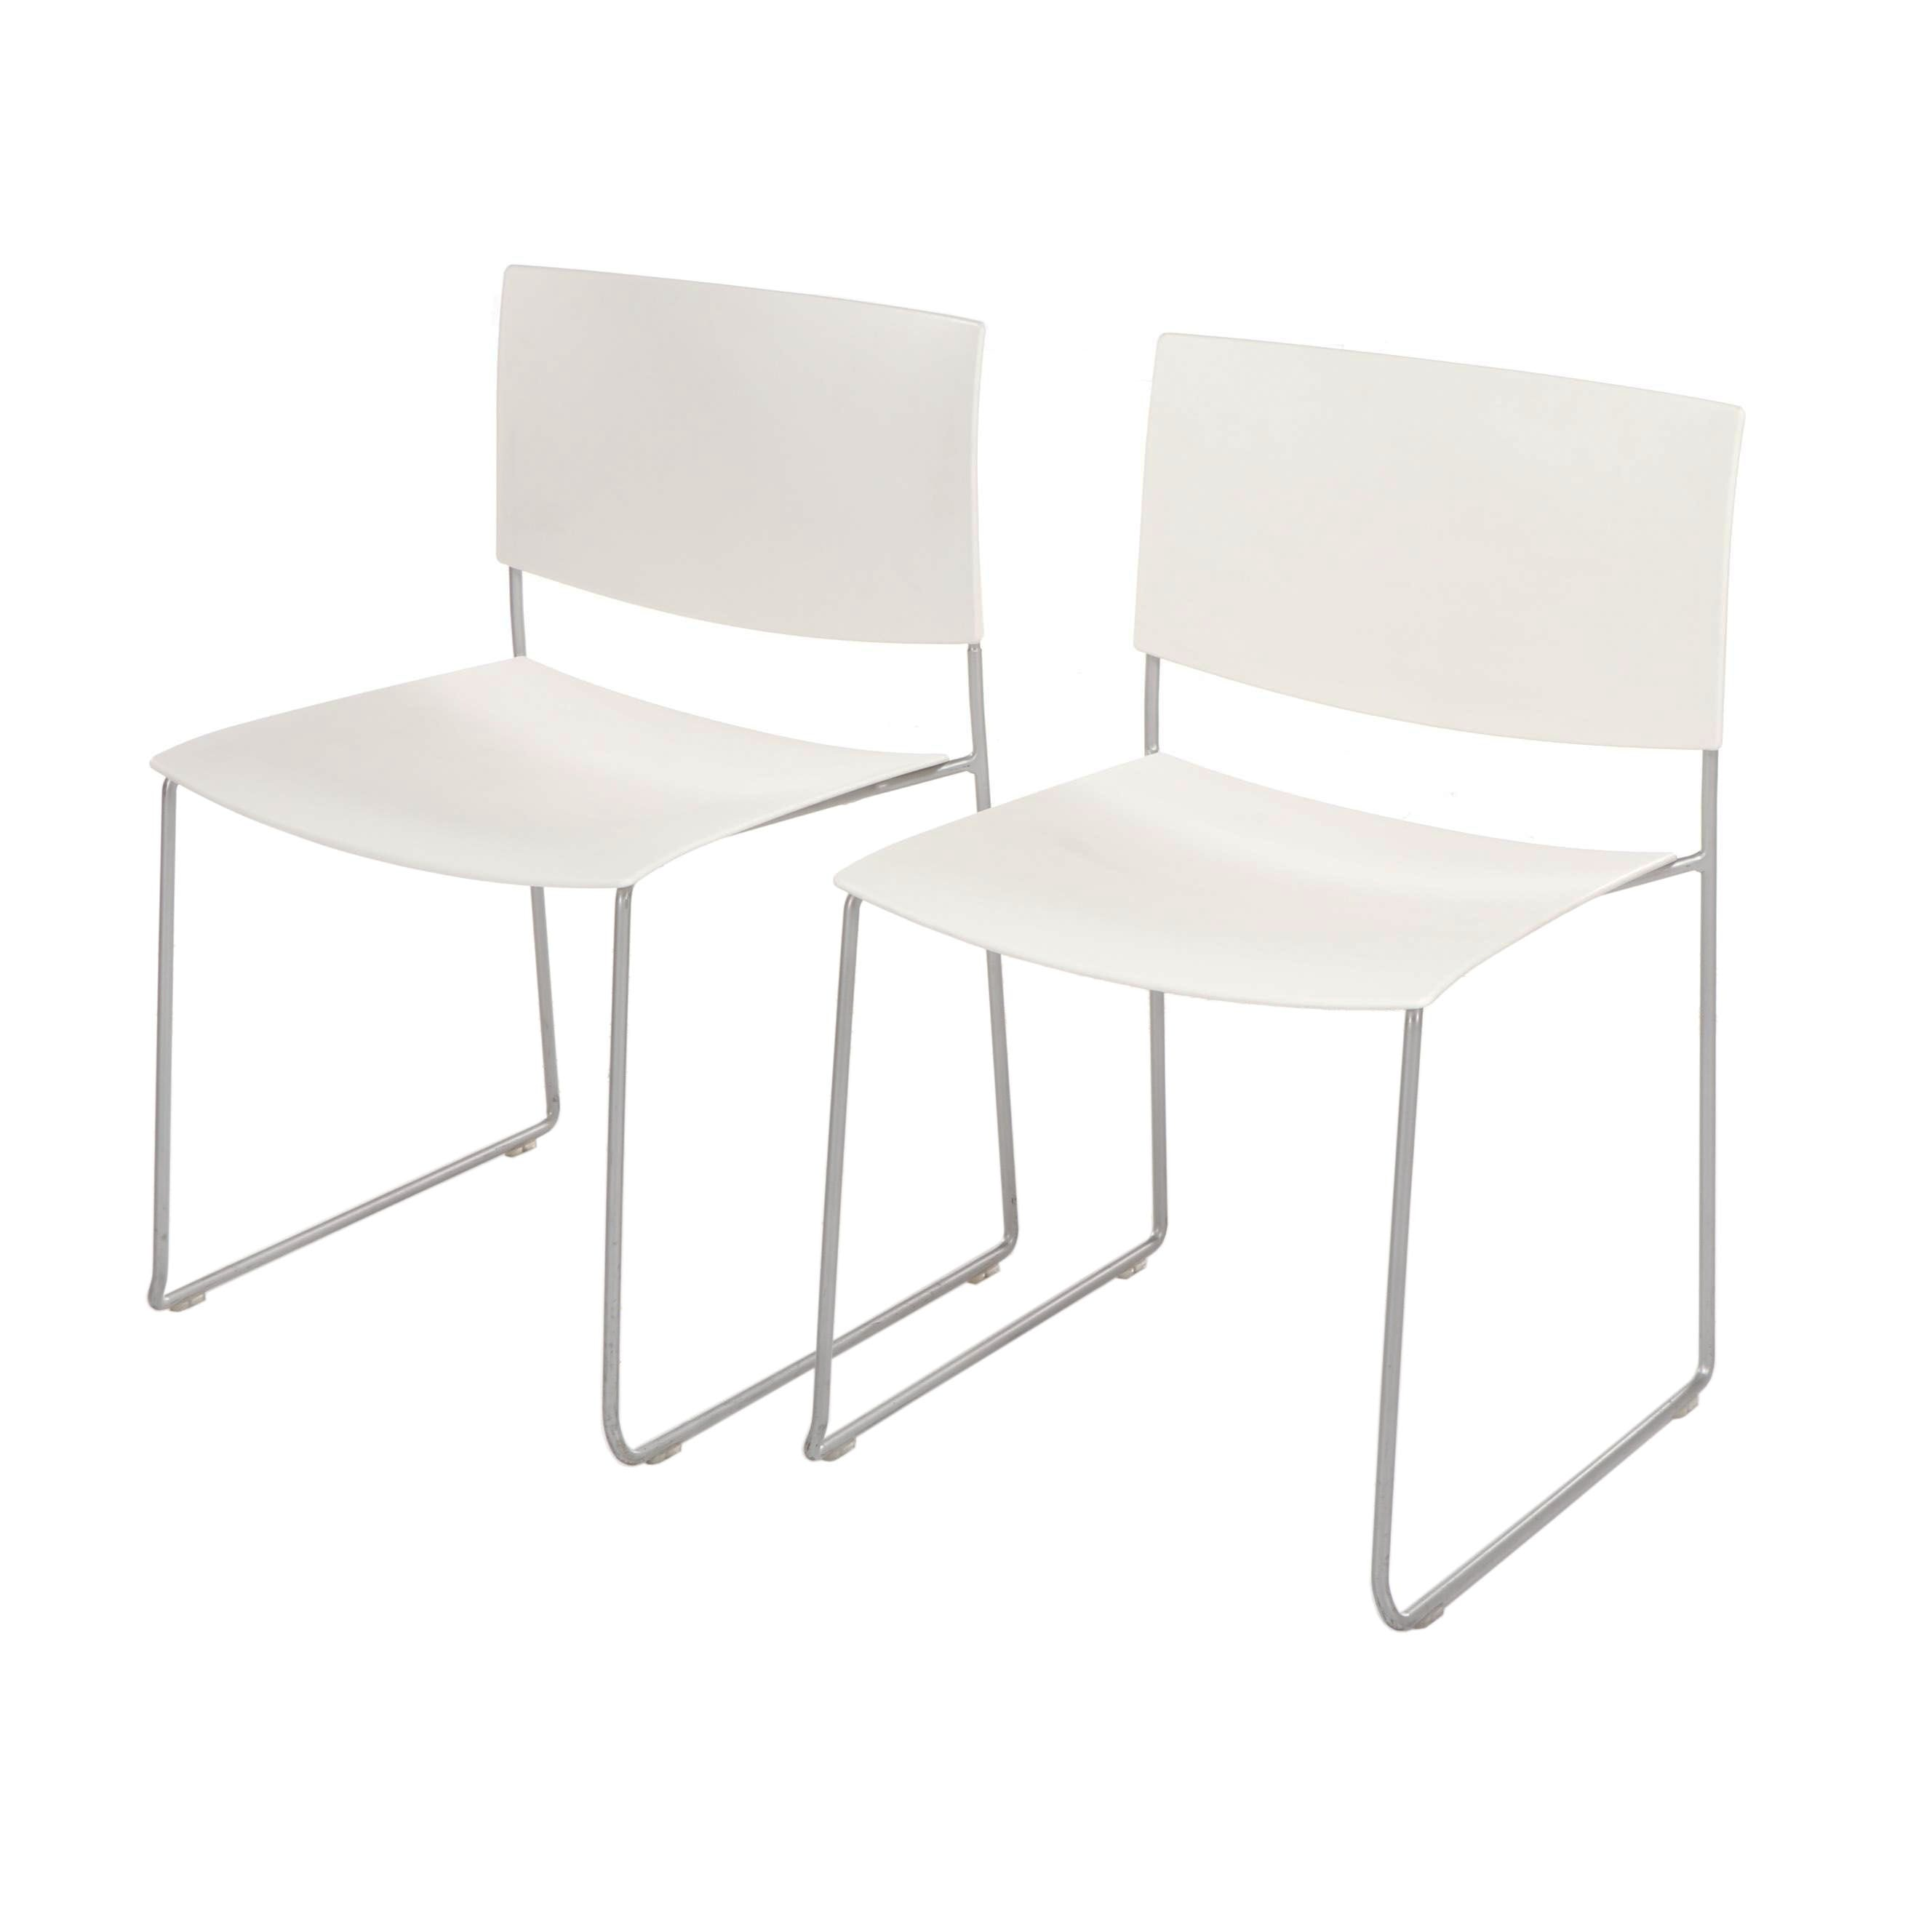 Andreu World Spain Modern Style Plastic and Metal Stacking Chairs